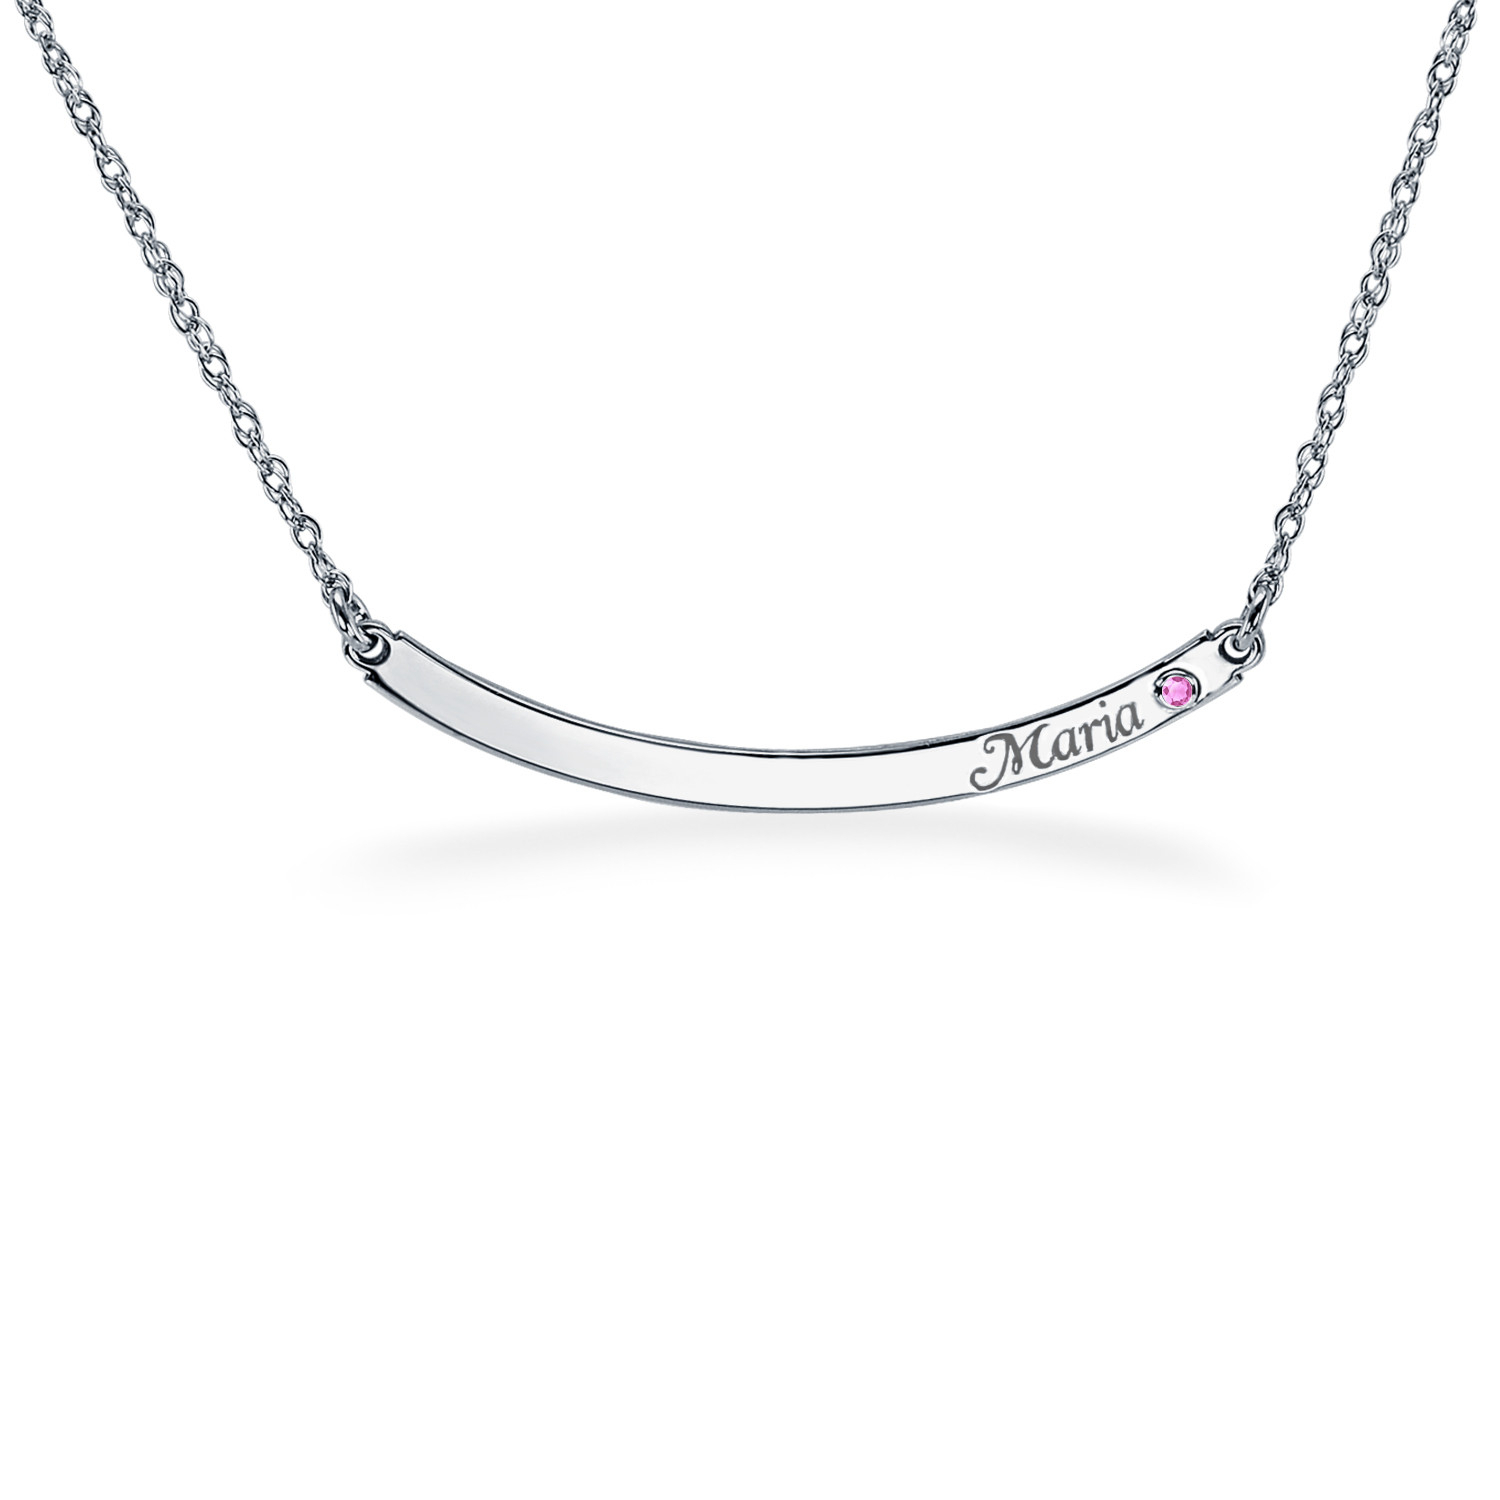 Simulated Birthstone Engravable Curved Bar Name Necklace (1 Stone And Line)|Zales With Regard To Most Recently Released Sparkling Curved Bar Necklaces (Gallery 24 of 25)